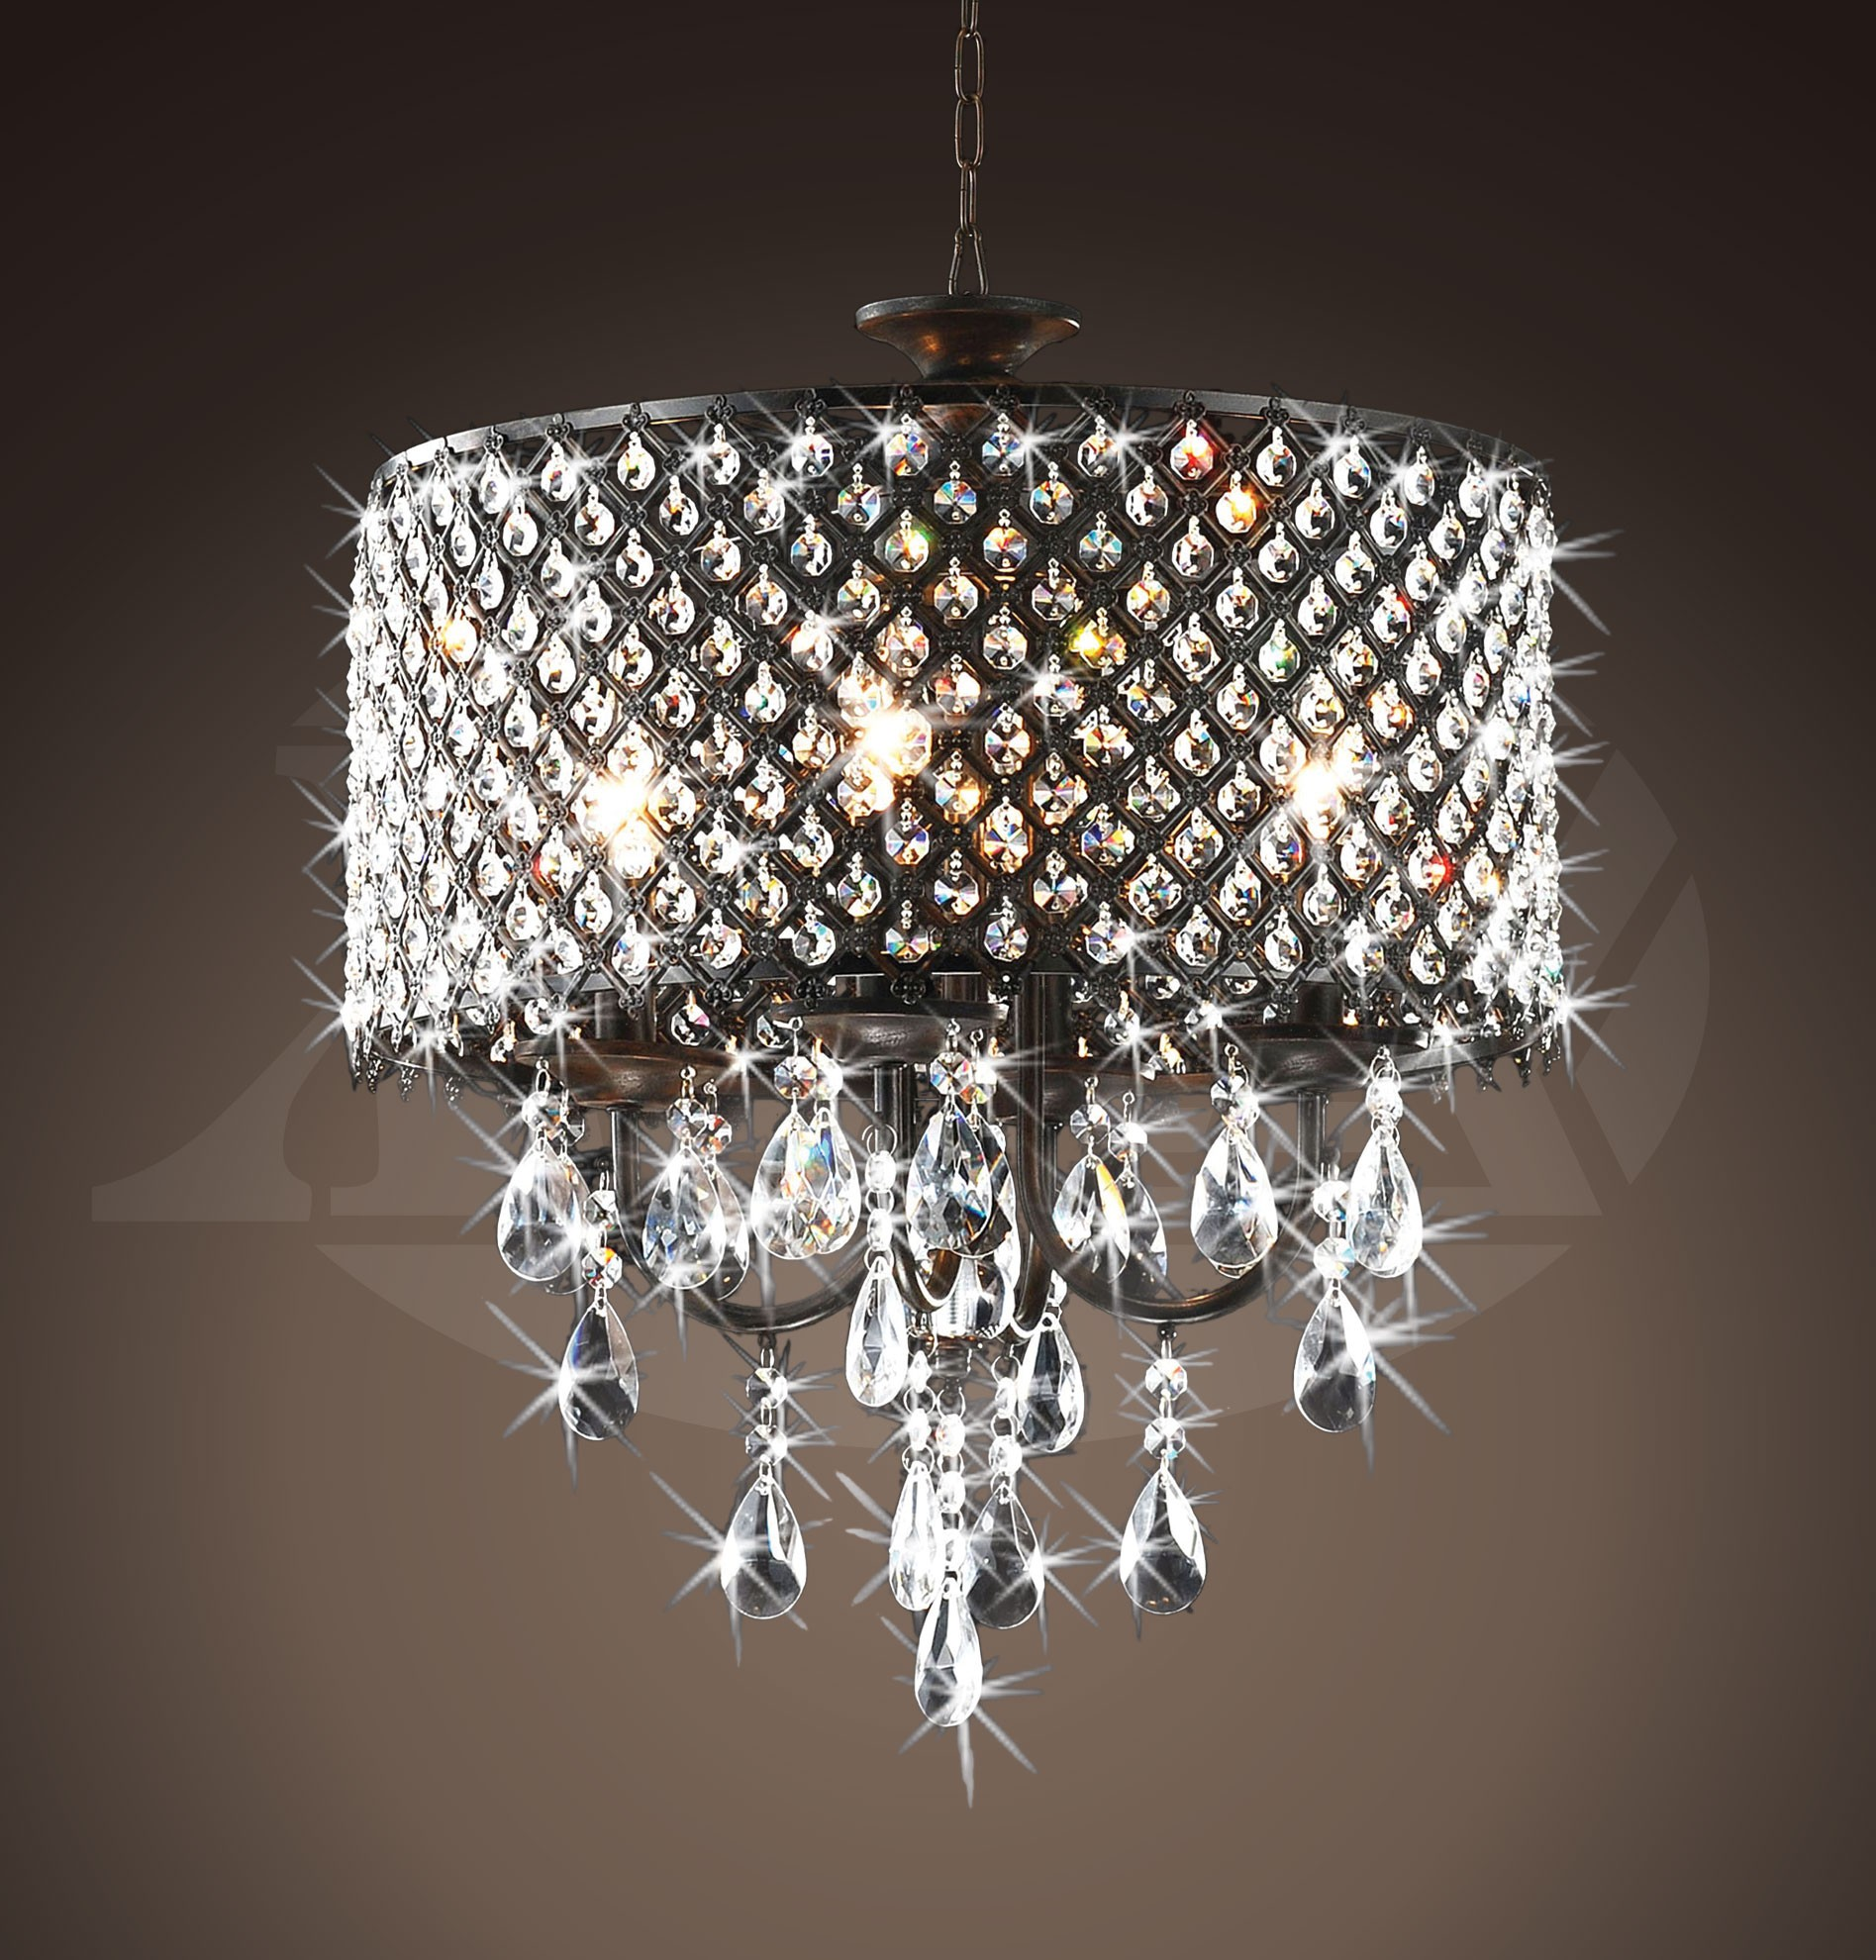 ceiling dp pendant cylinder shade drum lighting lightinthebox in home chandelier style light mount modern flush chandeliers fixture crystal silver